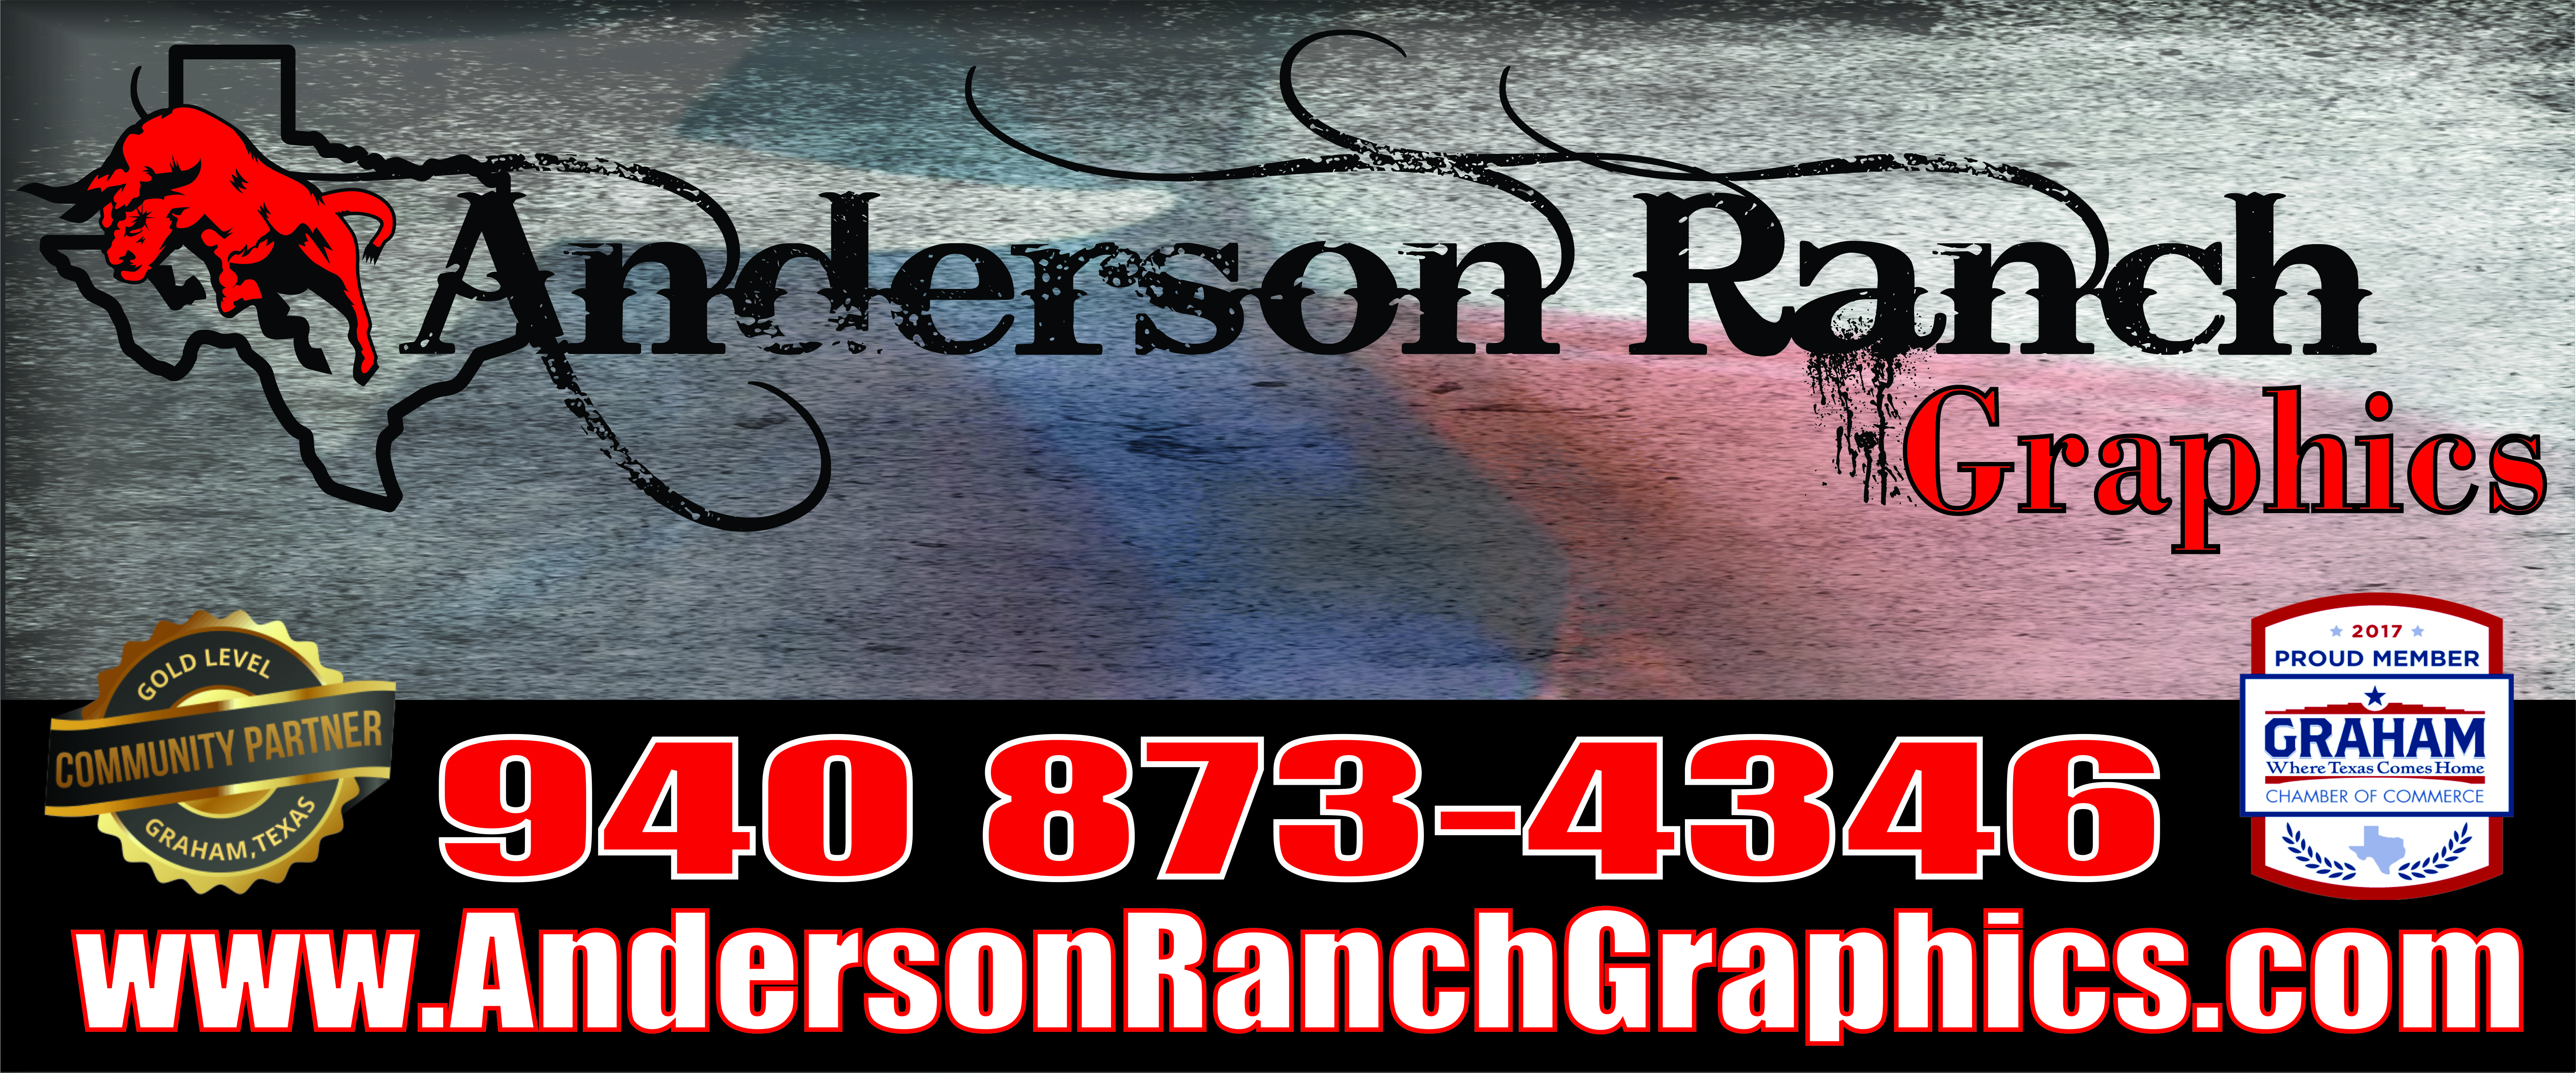 Anderson Ranch Graphics